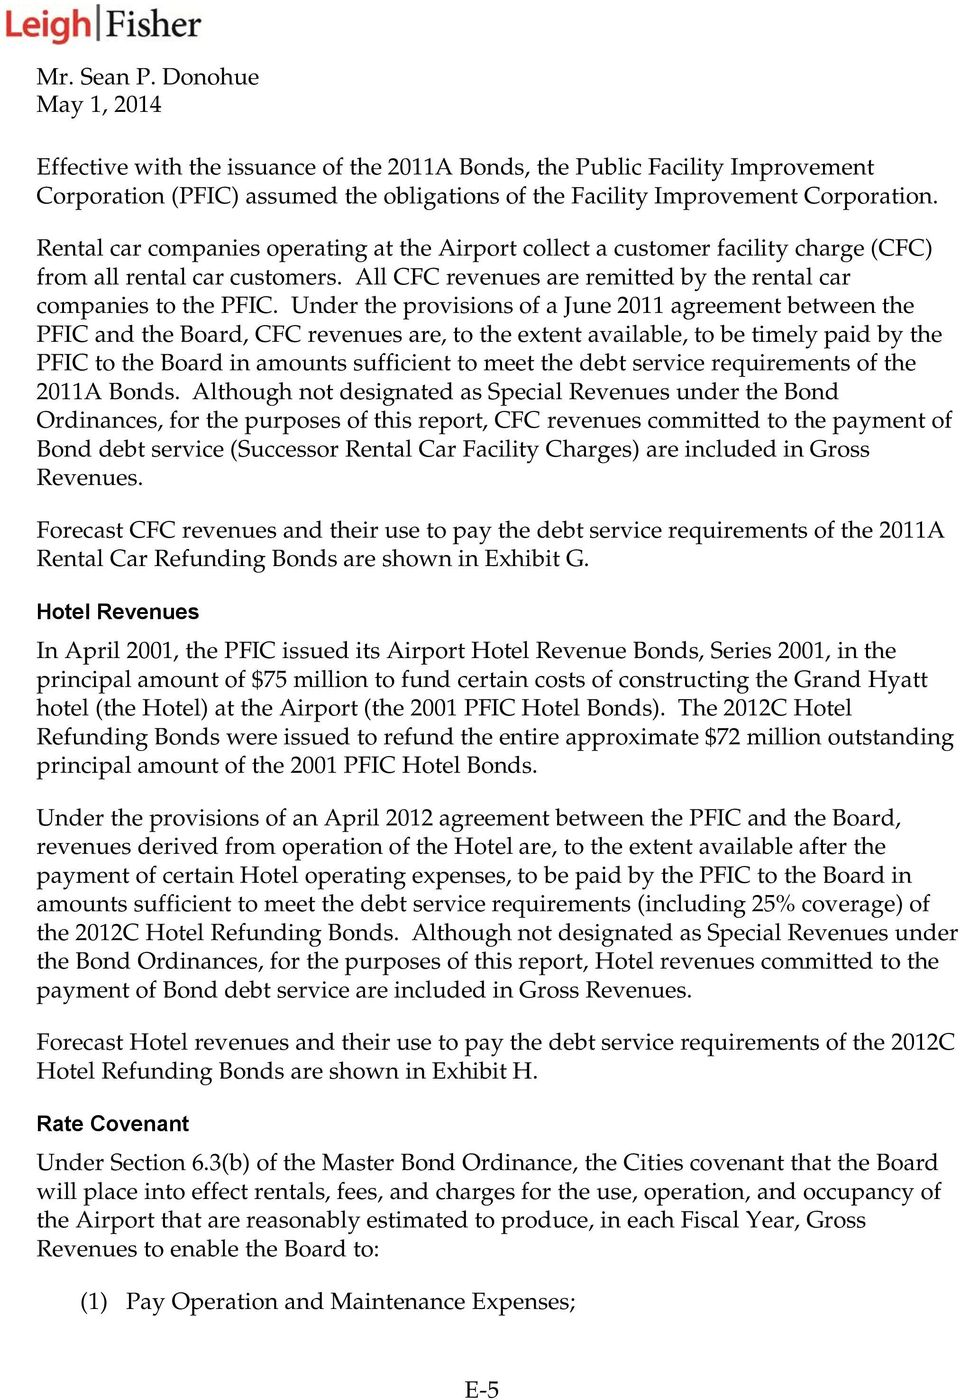 Under the provisions of a June 2011 agreement between the PFIC and the Board, CFC revenues are, to the extent available, to be timely paid by the PFIC to the Board in amounts sufficient to meet the